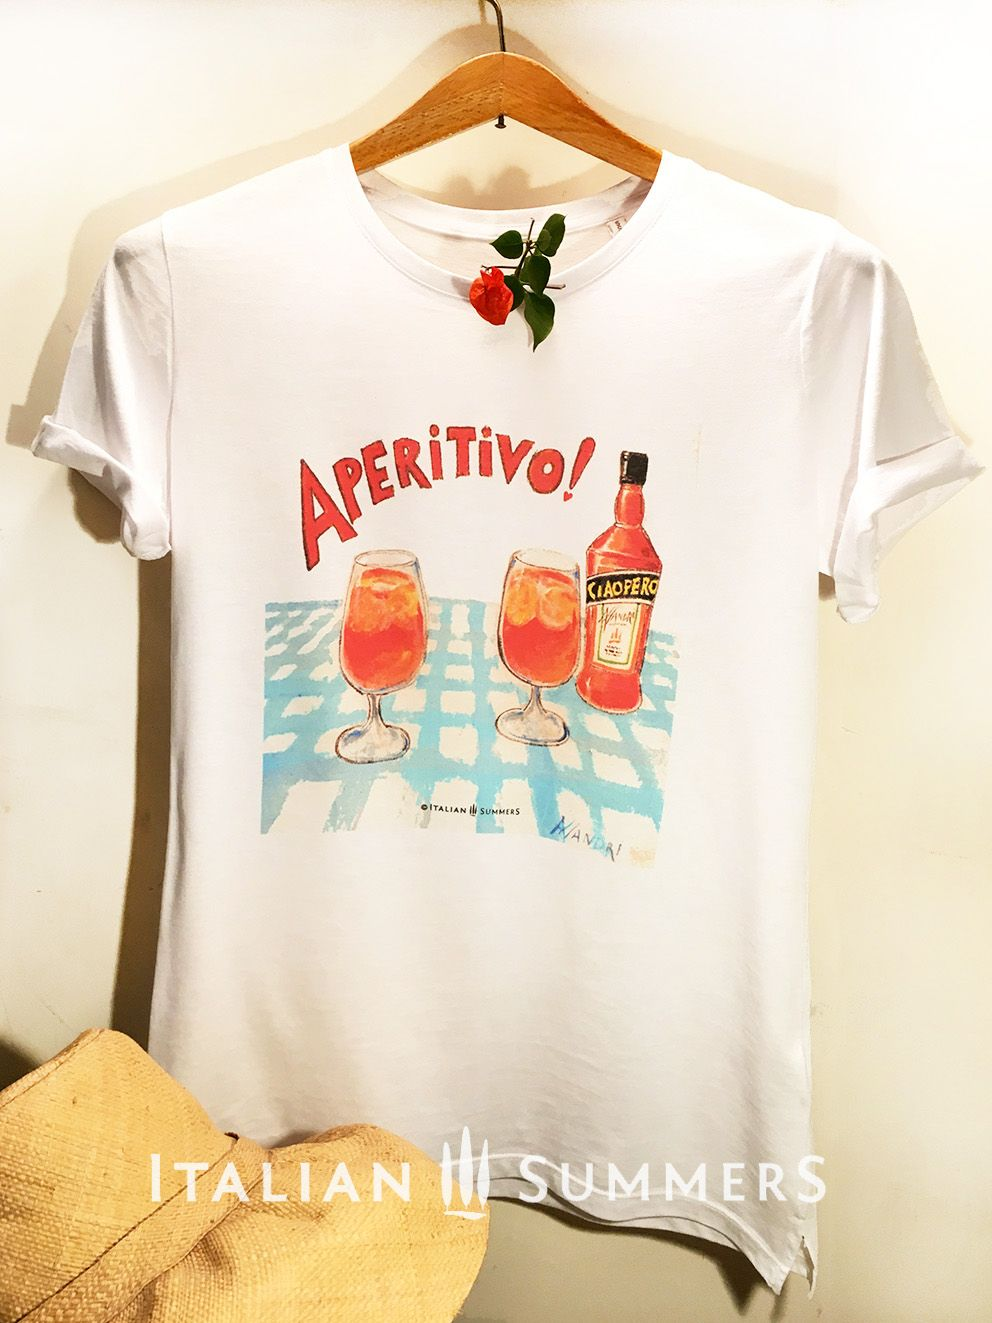 b152599dba T-shirt APERITIVO APEROL. The legendary APERITIVO T-SHIRT! The ultimate  excuse to celebrate a day's work with your friends with a drink. The  Italian way!